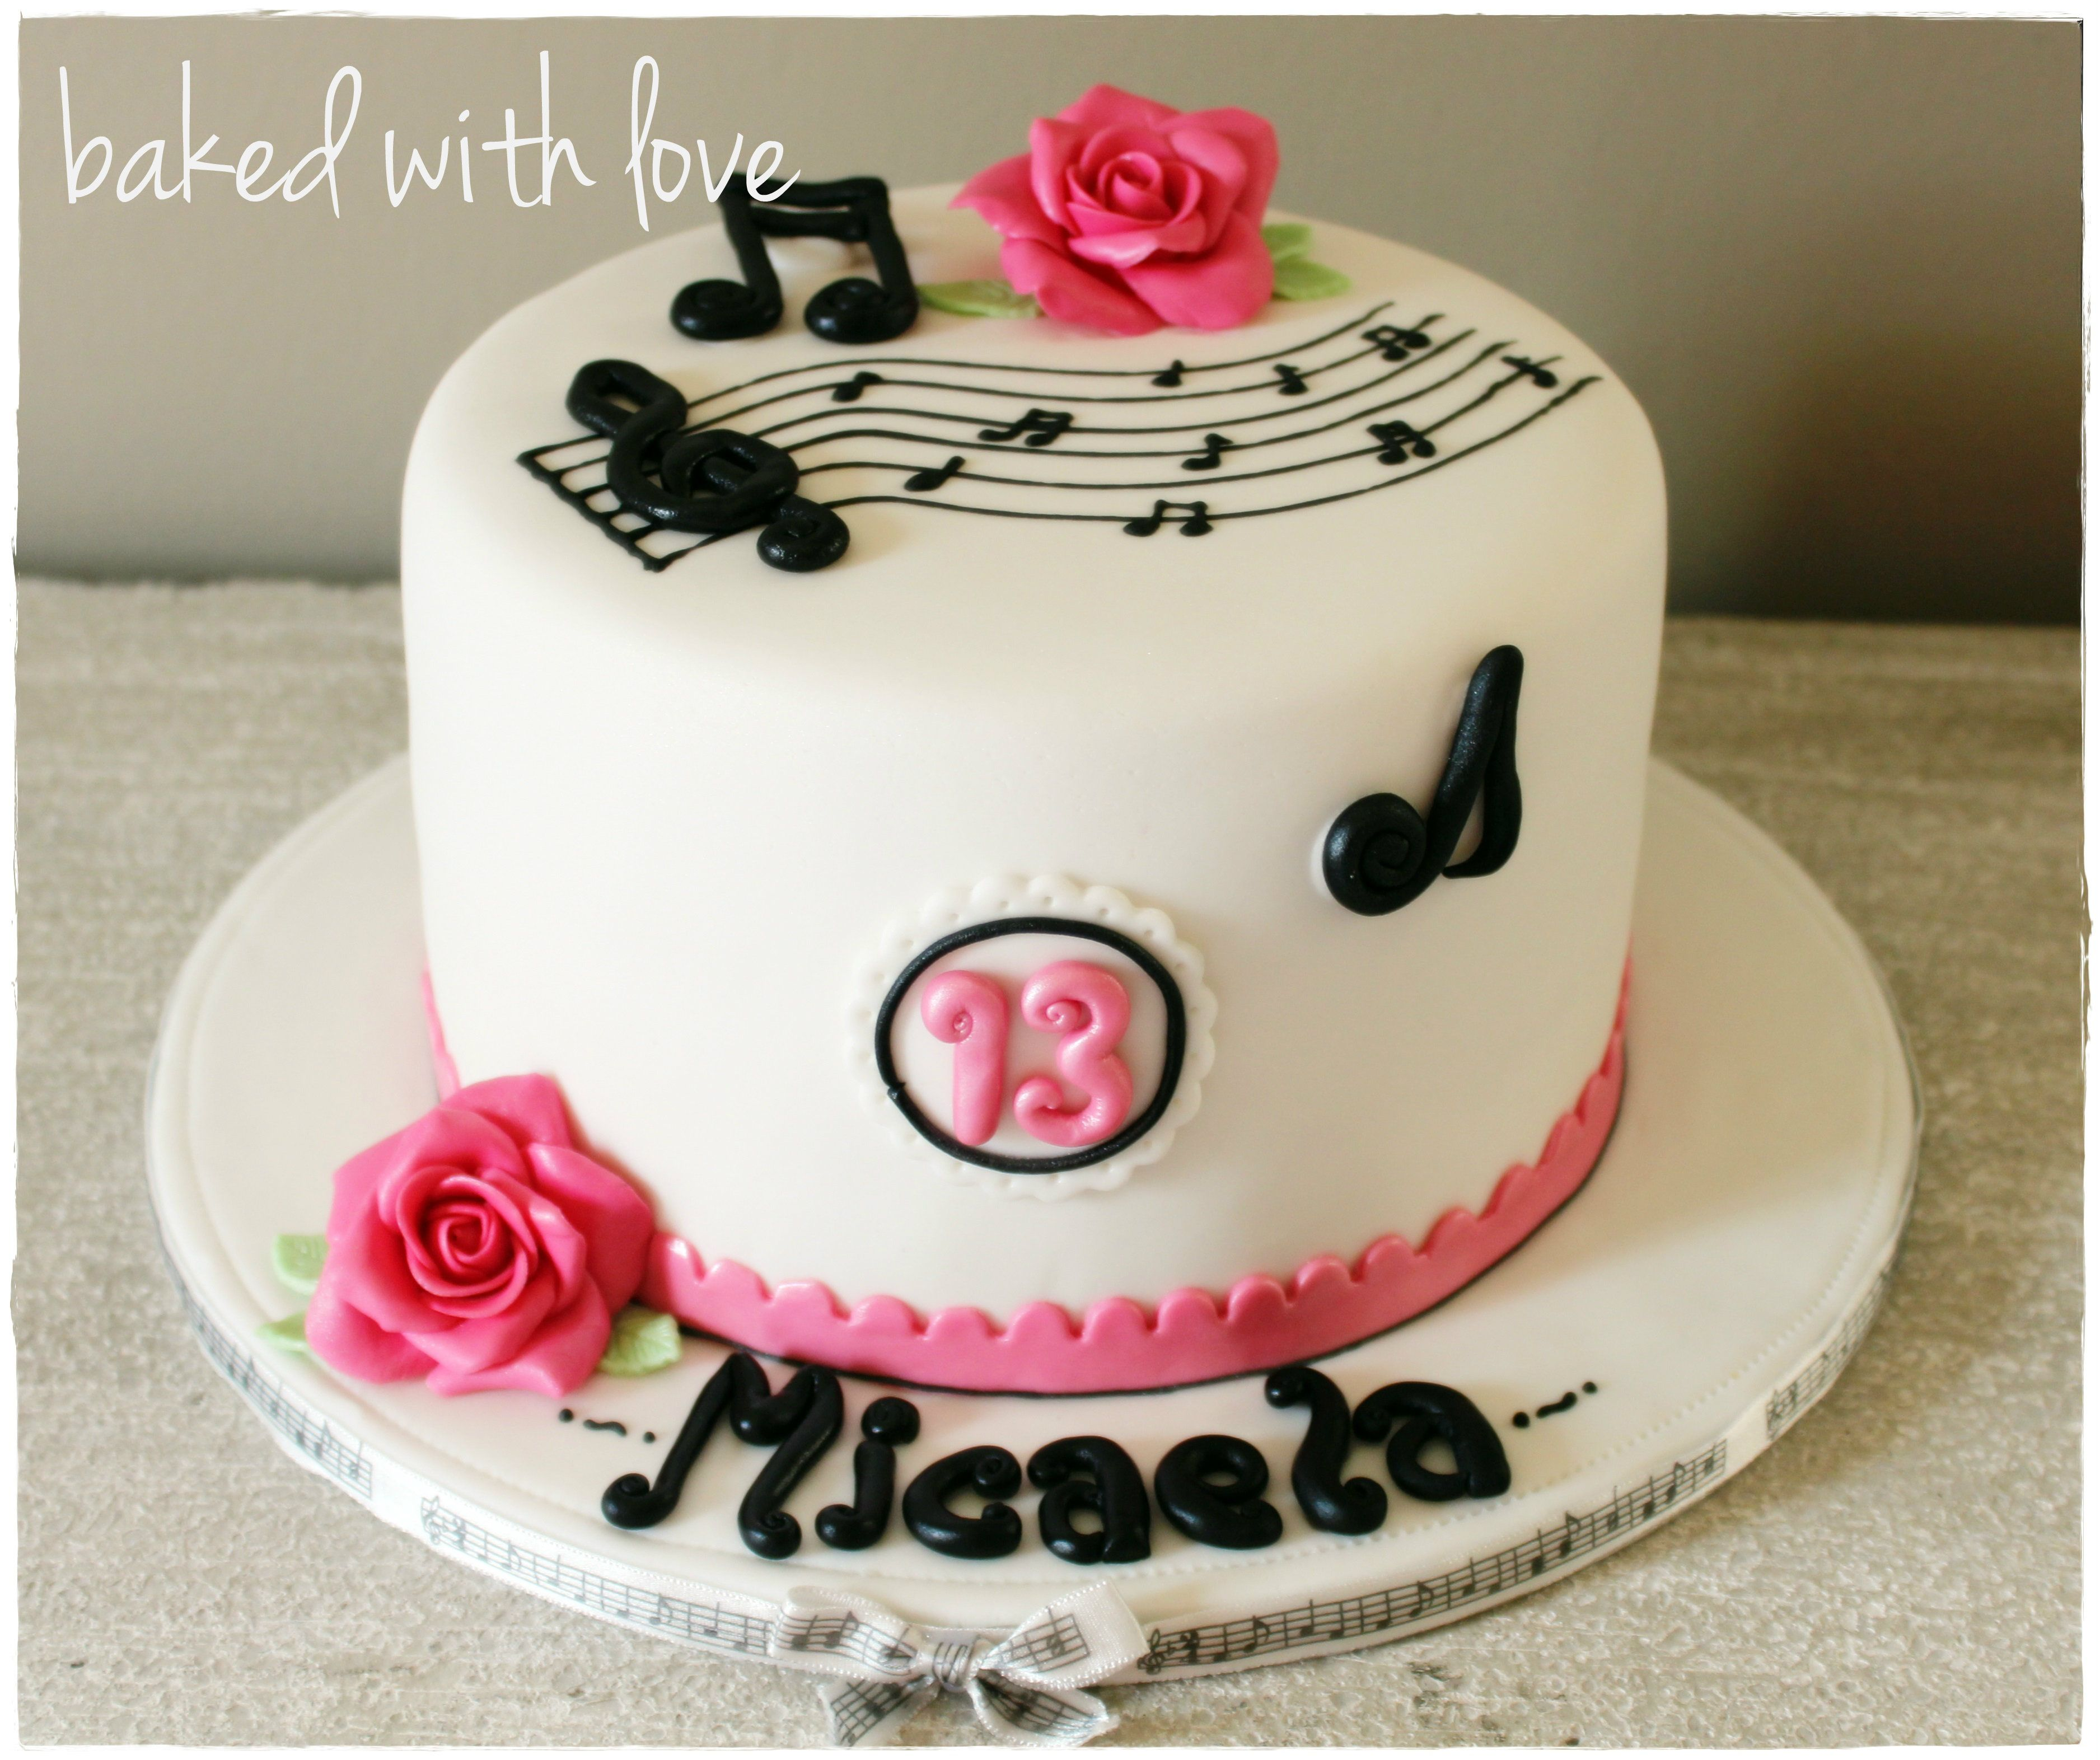 Pin By Cornel Smit On Kids Party Cakes In 2019 Pinterest Cake